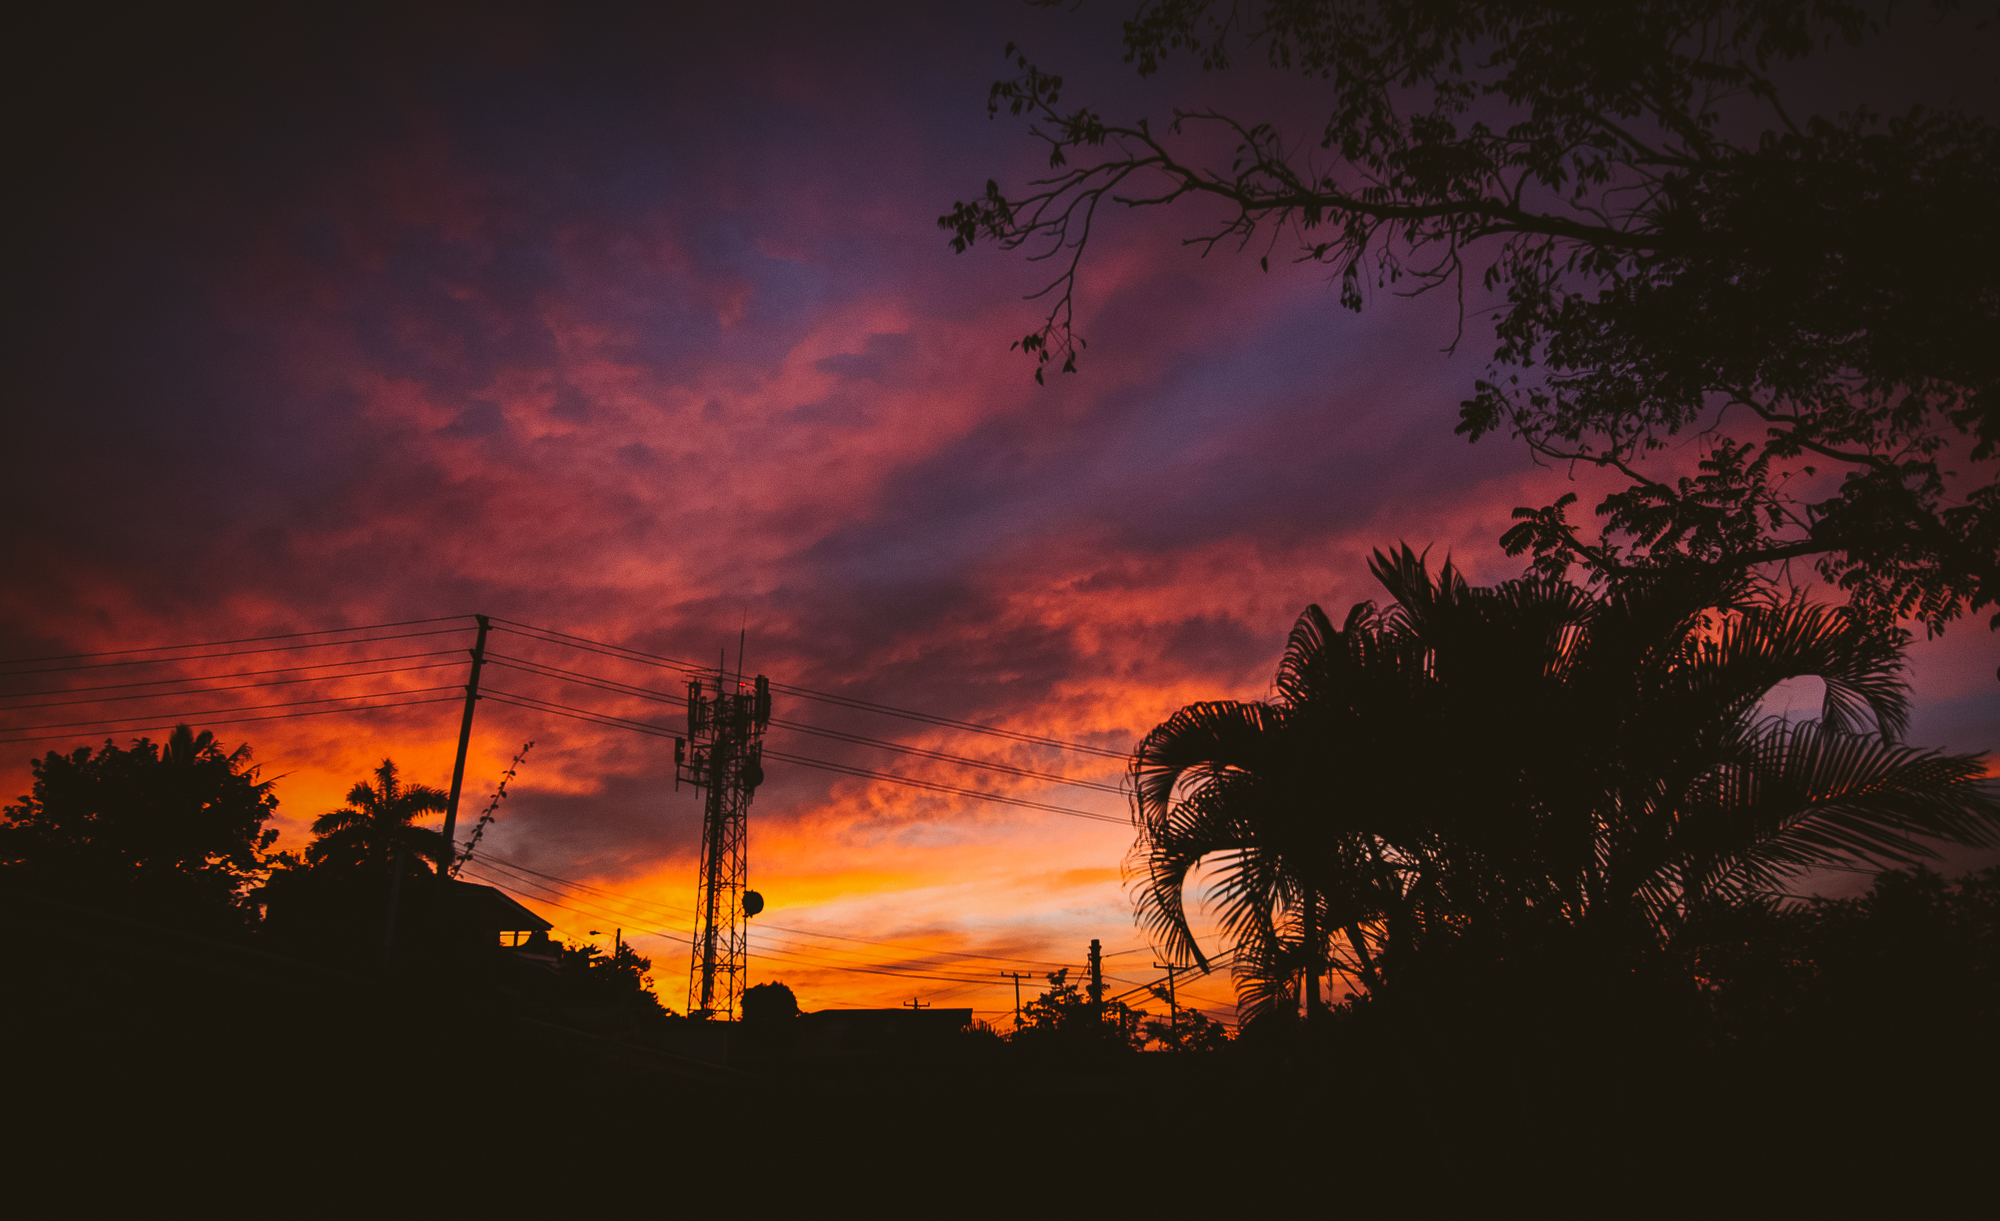 The most colourful sunset in Belize was viewed from the tiny garden at our hotel in San Ignacio.